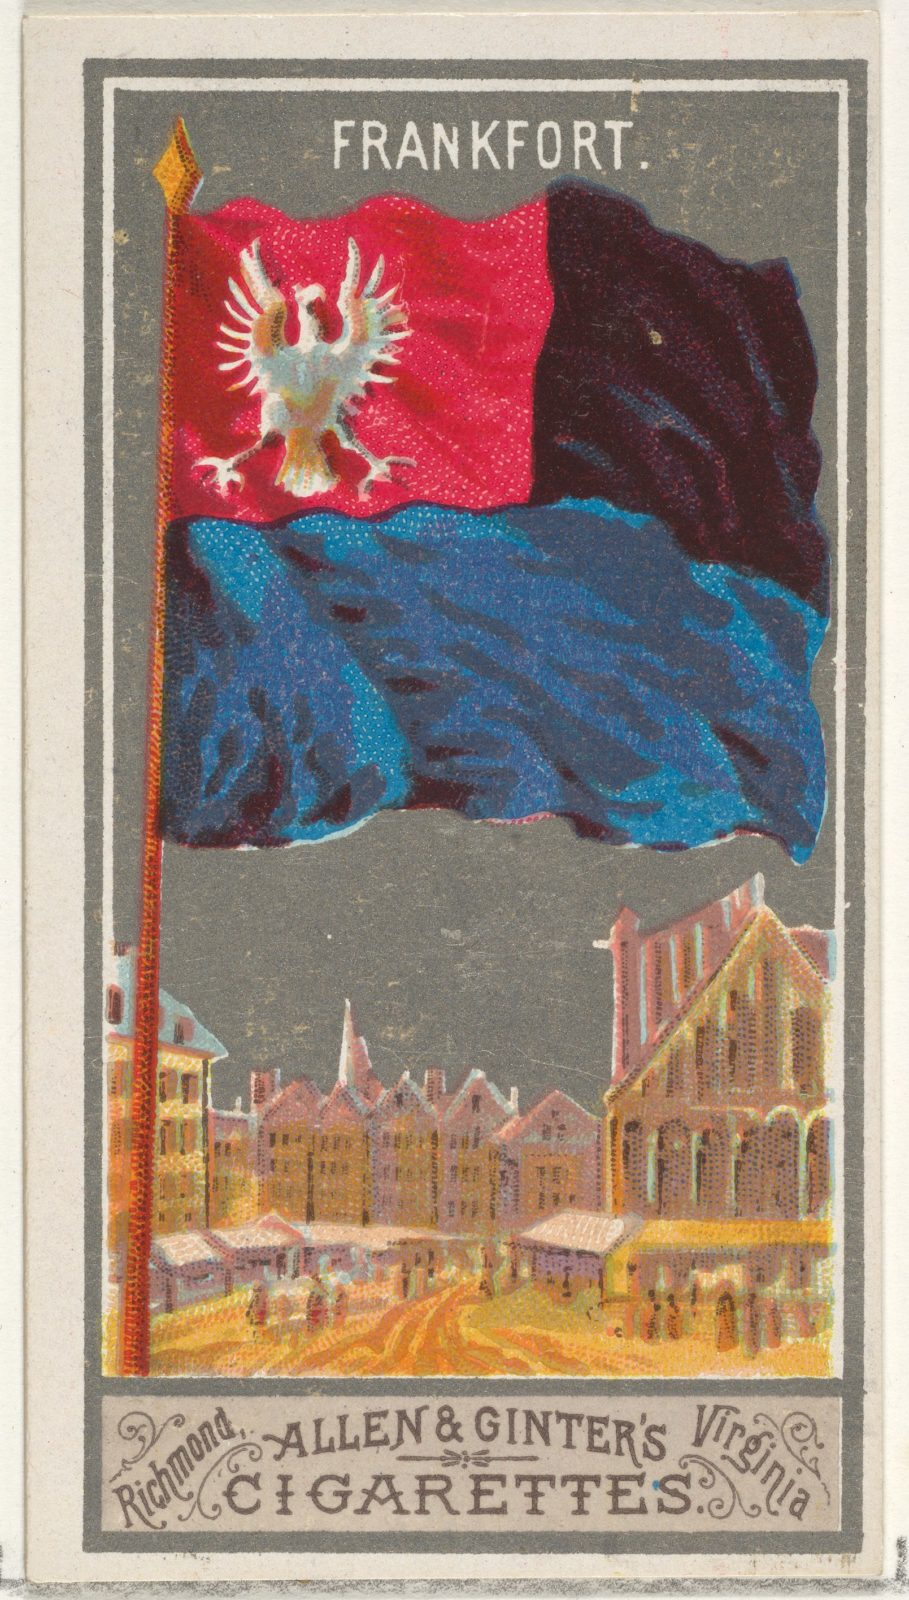 Frankfurt, from the City Flags series (N6) for Allen & Ginter Cigarettes Brands